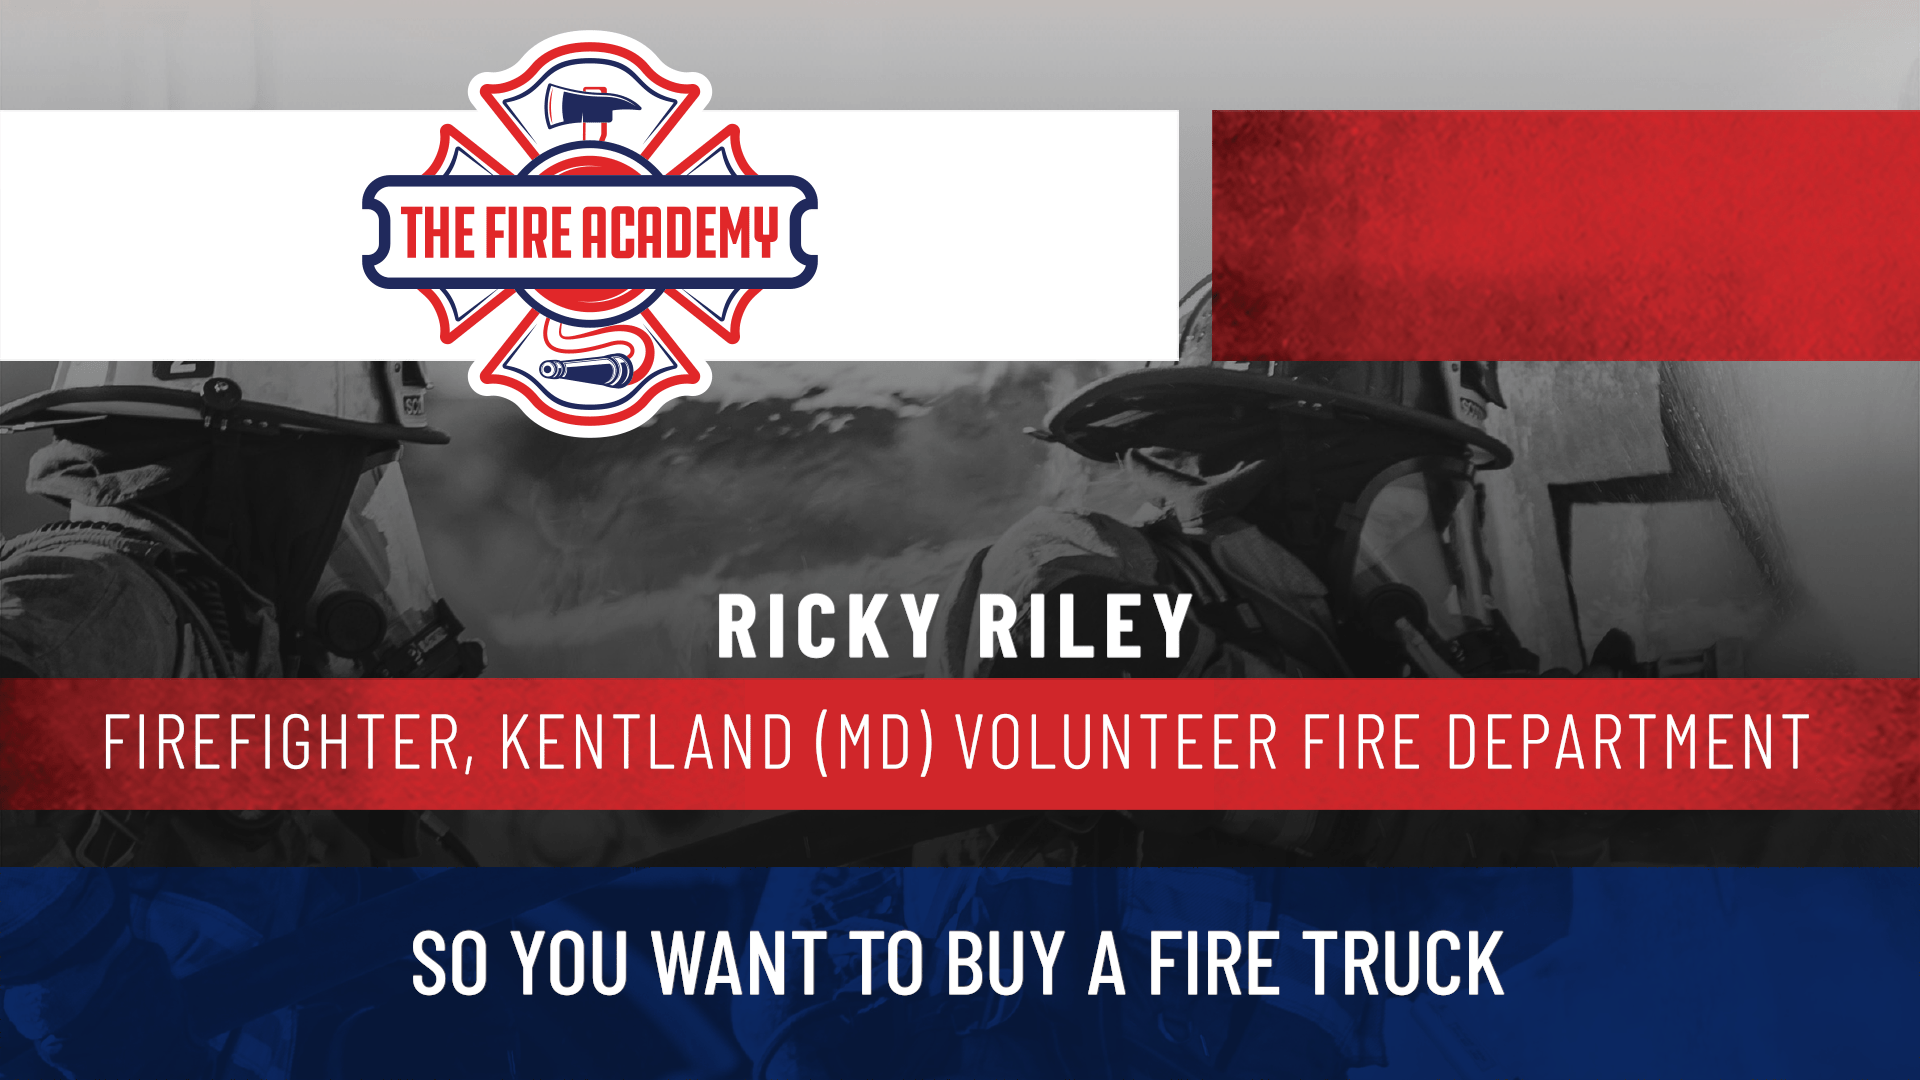 So You Want to Buy a Fire Truck?